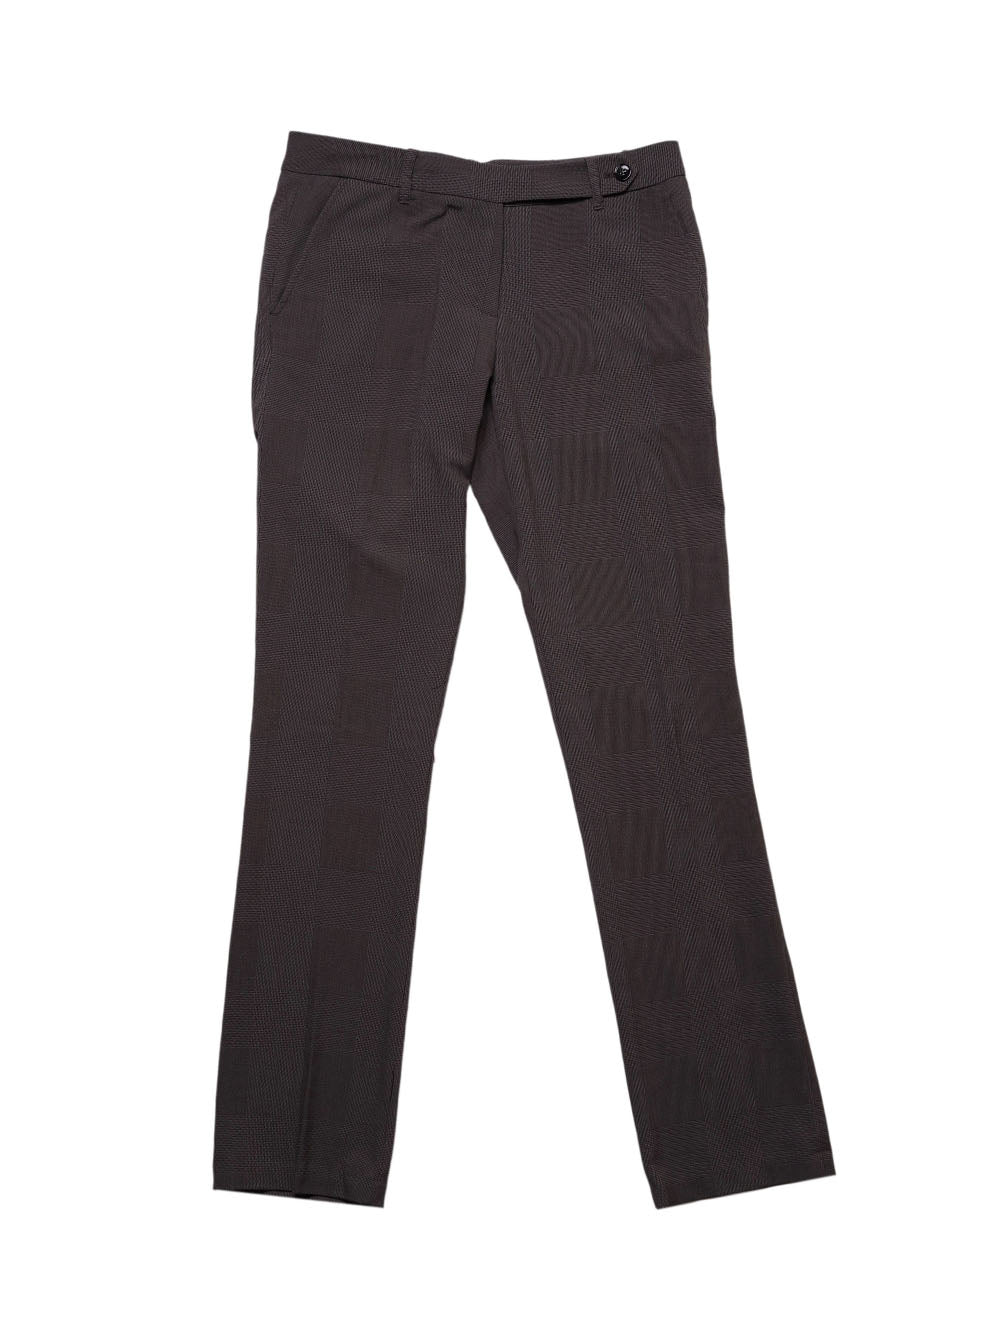 Front photo of Preloved Silvian Heach Grey Woman's trousers - size 12/L